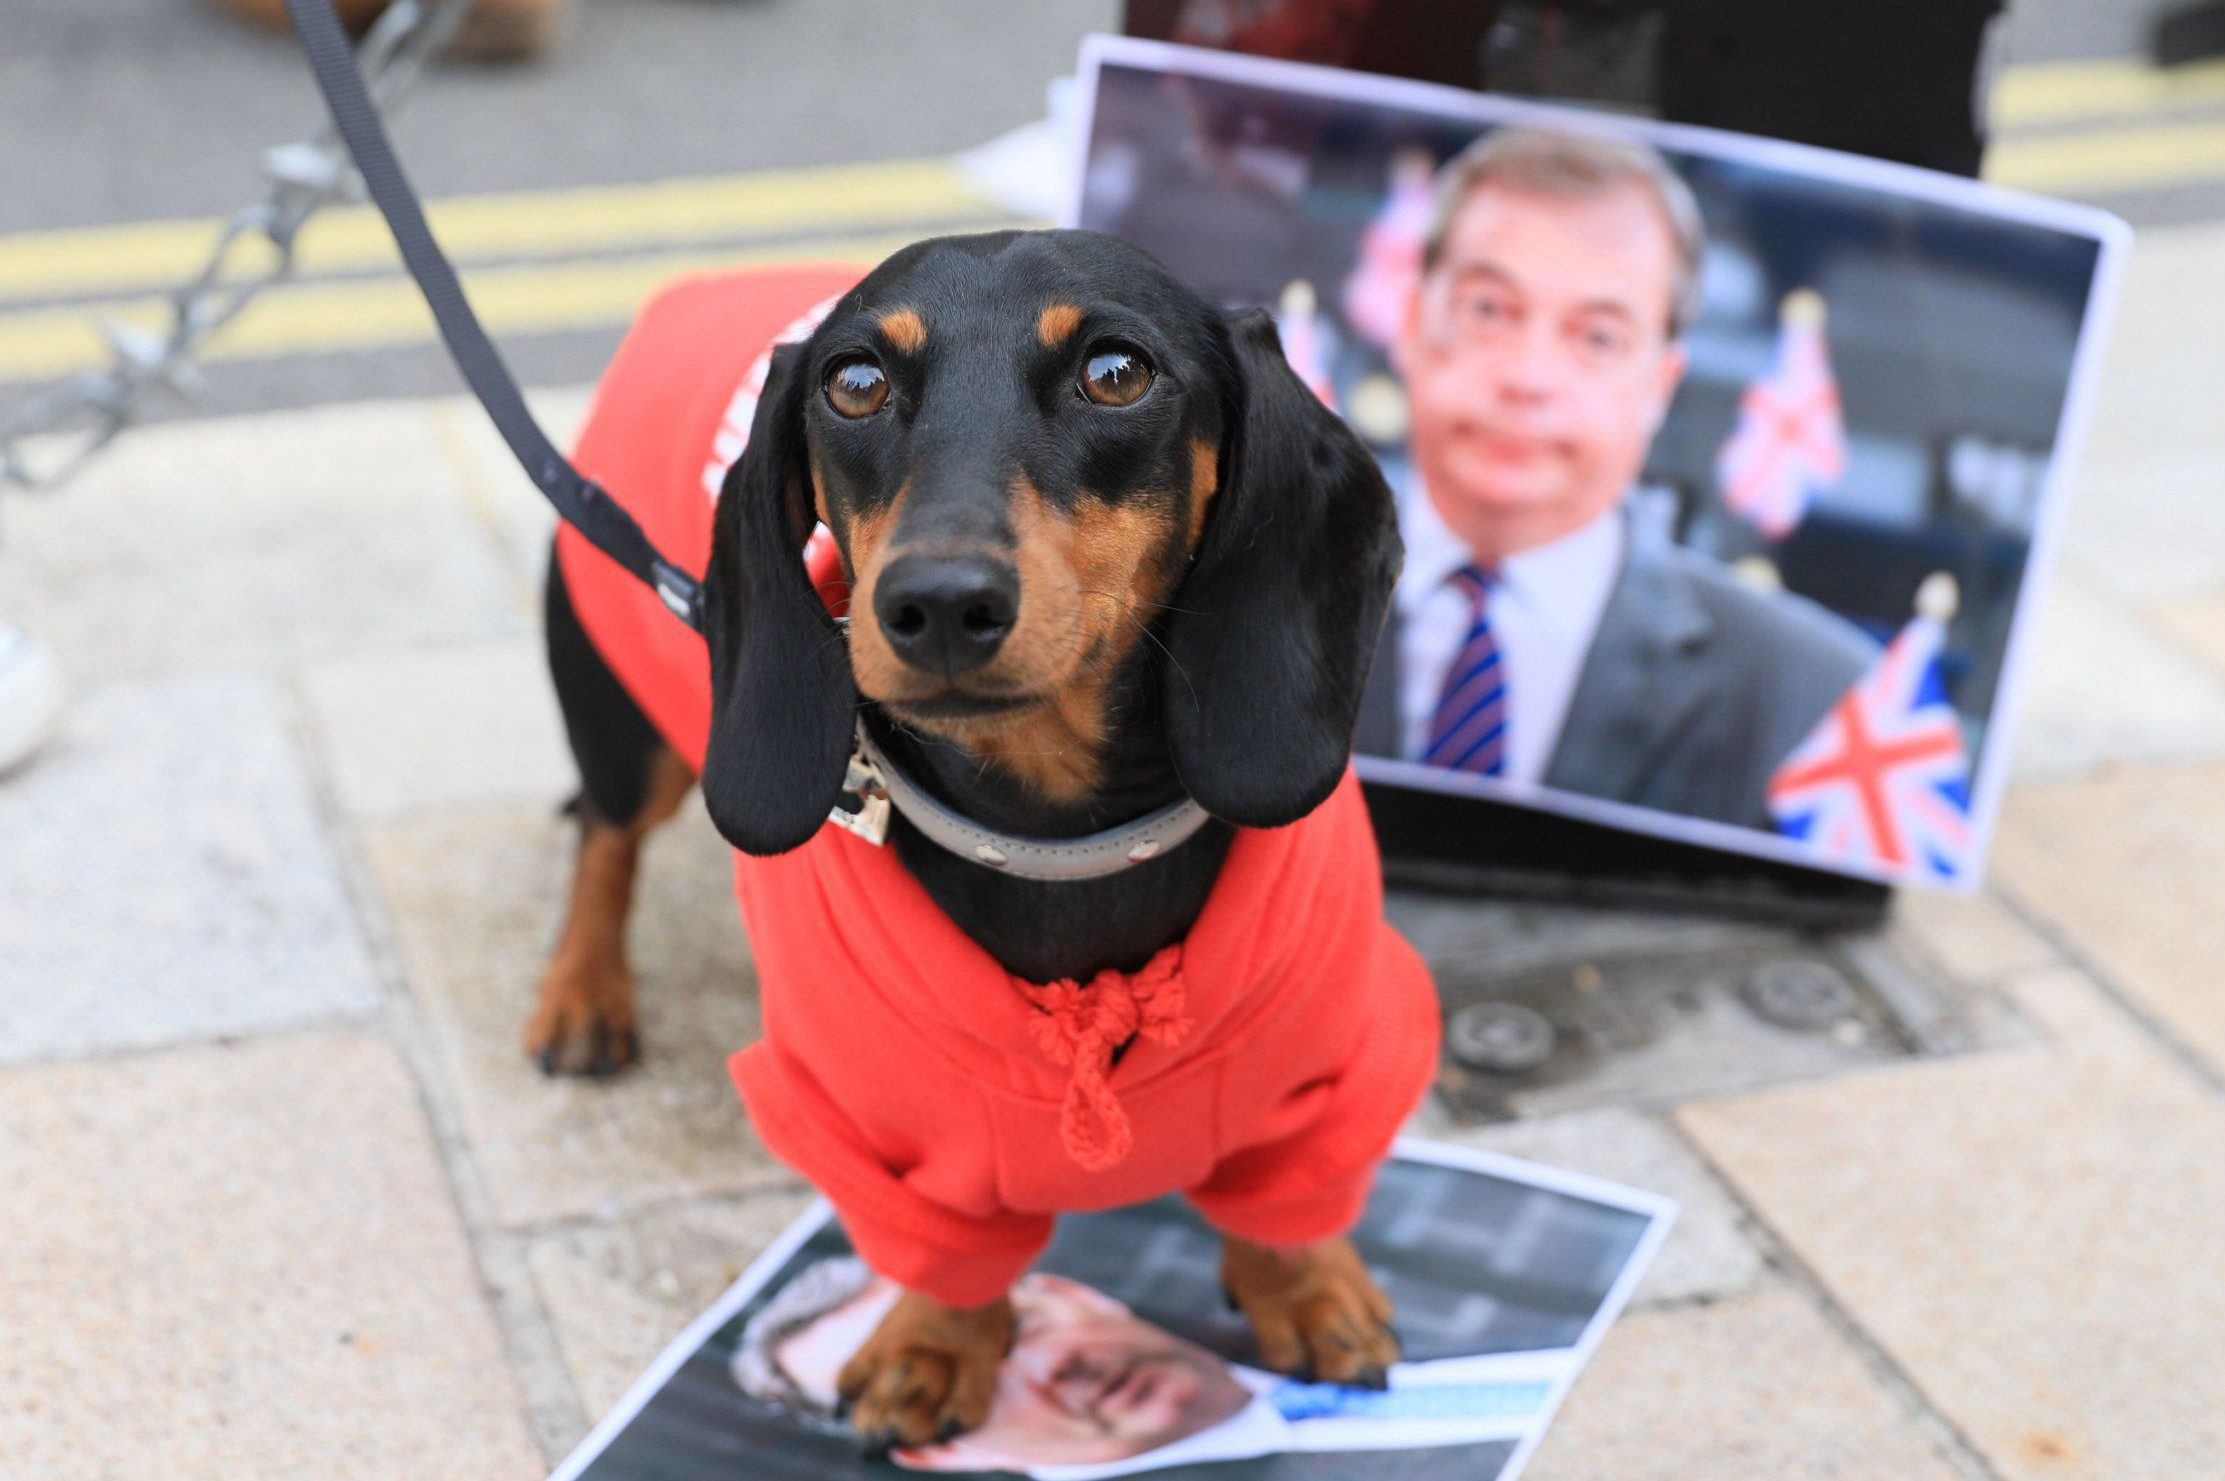 Mandatory Credit: Photo by Imageplotter/REX (9916868u) Mildred the Sausage, a dachshund, uses a 'pee station' with Nigel Farage's images. The Wooferendum dog march, London, UK - 07 Oct 2018 Dogs and their owners protest in the 'Wooferendum' against Brexit along a route in Westminster via Trafalgar Square, Whitehall and Parliament Square. The march is thought to have attracted around 5000 dogs and owners, as well as many who have joined without animals, some in fancy dress and with European flags and placards. Wooferendum is organised by founder Daniel Elkan.